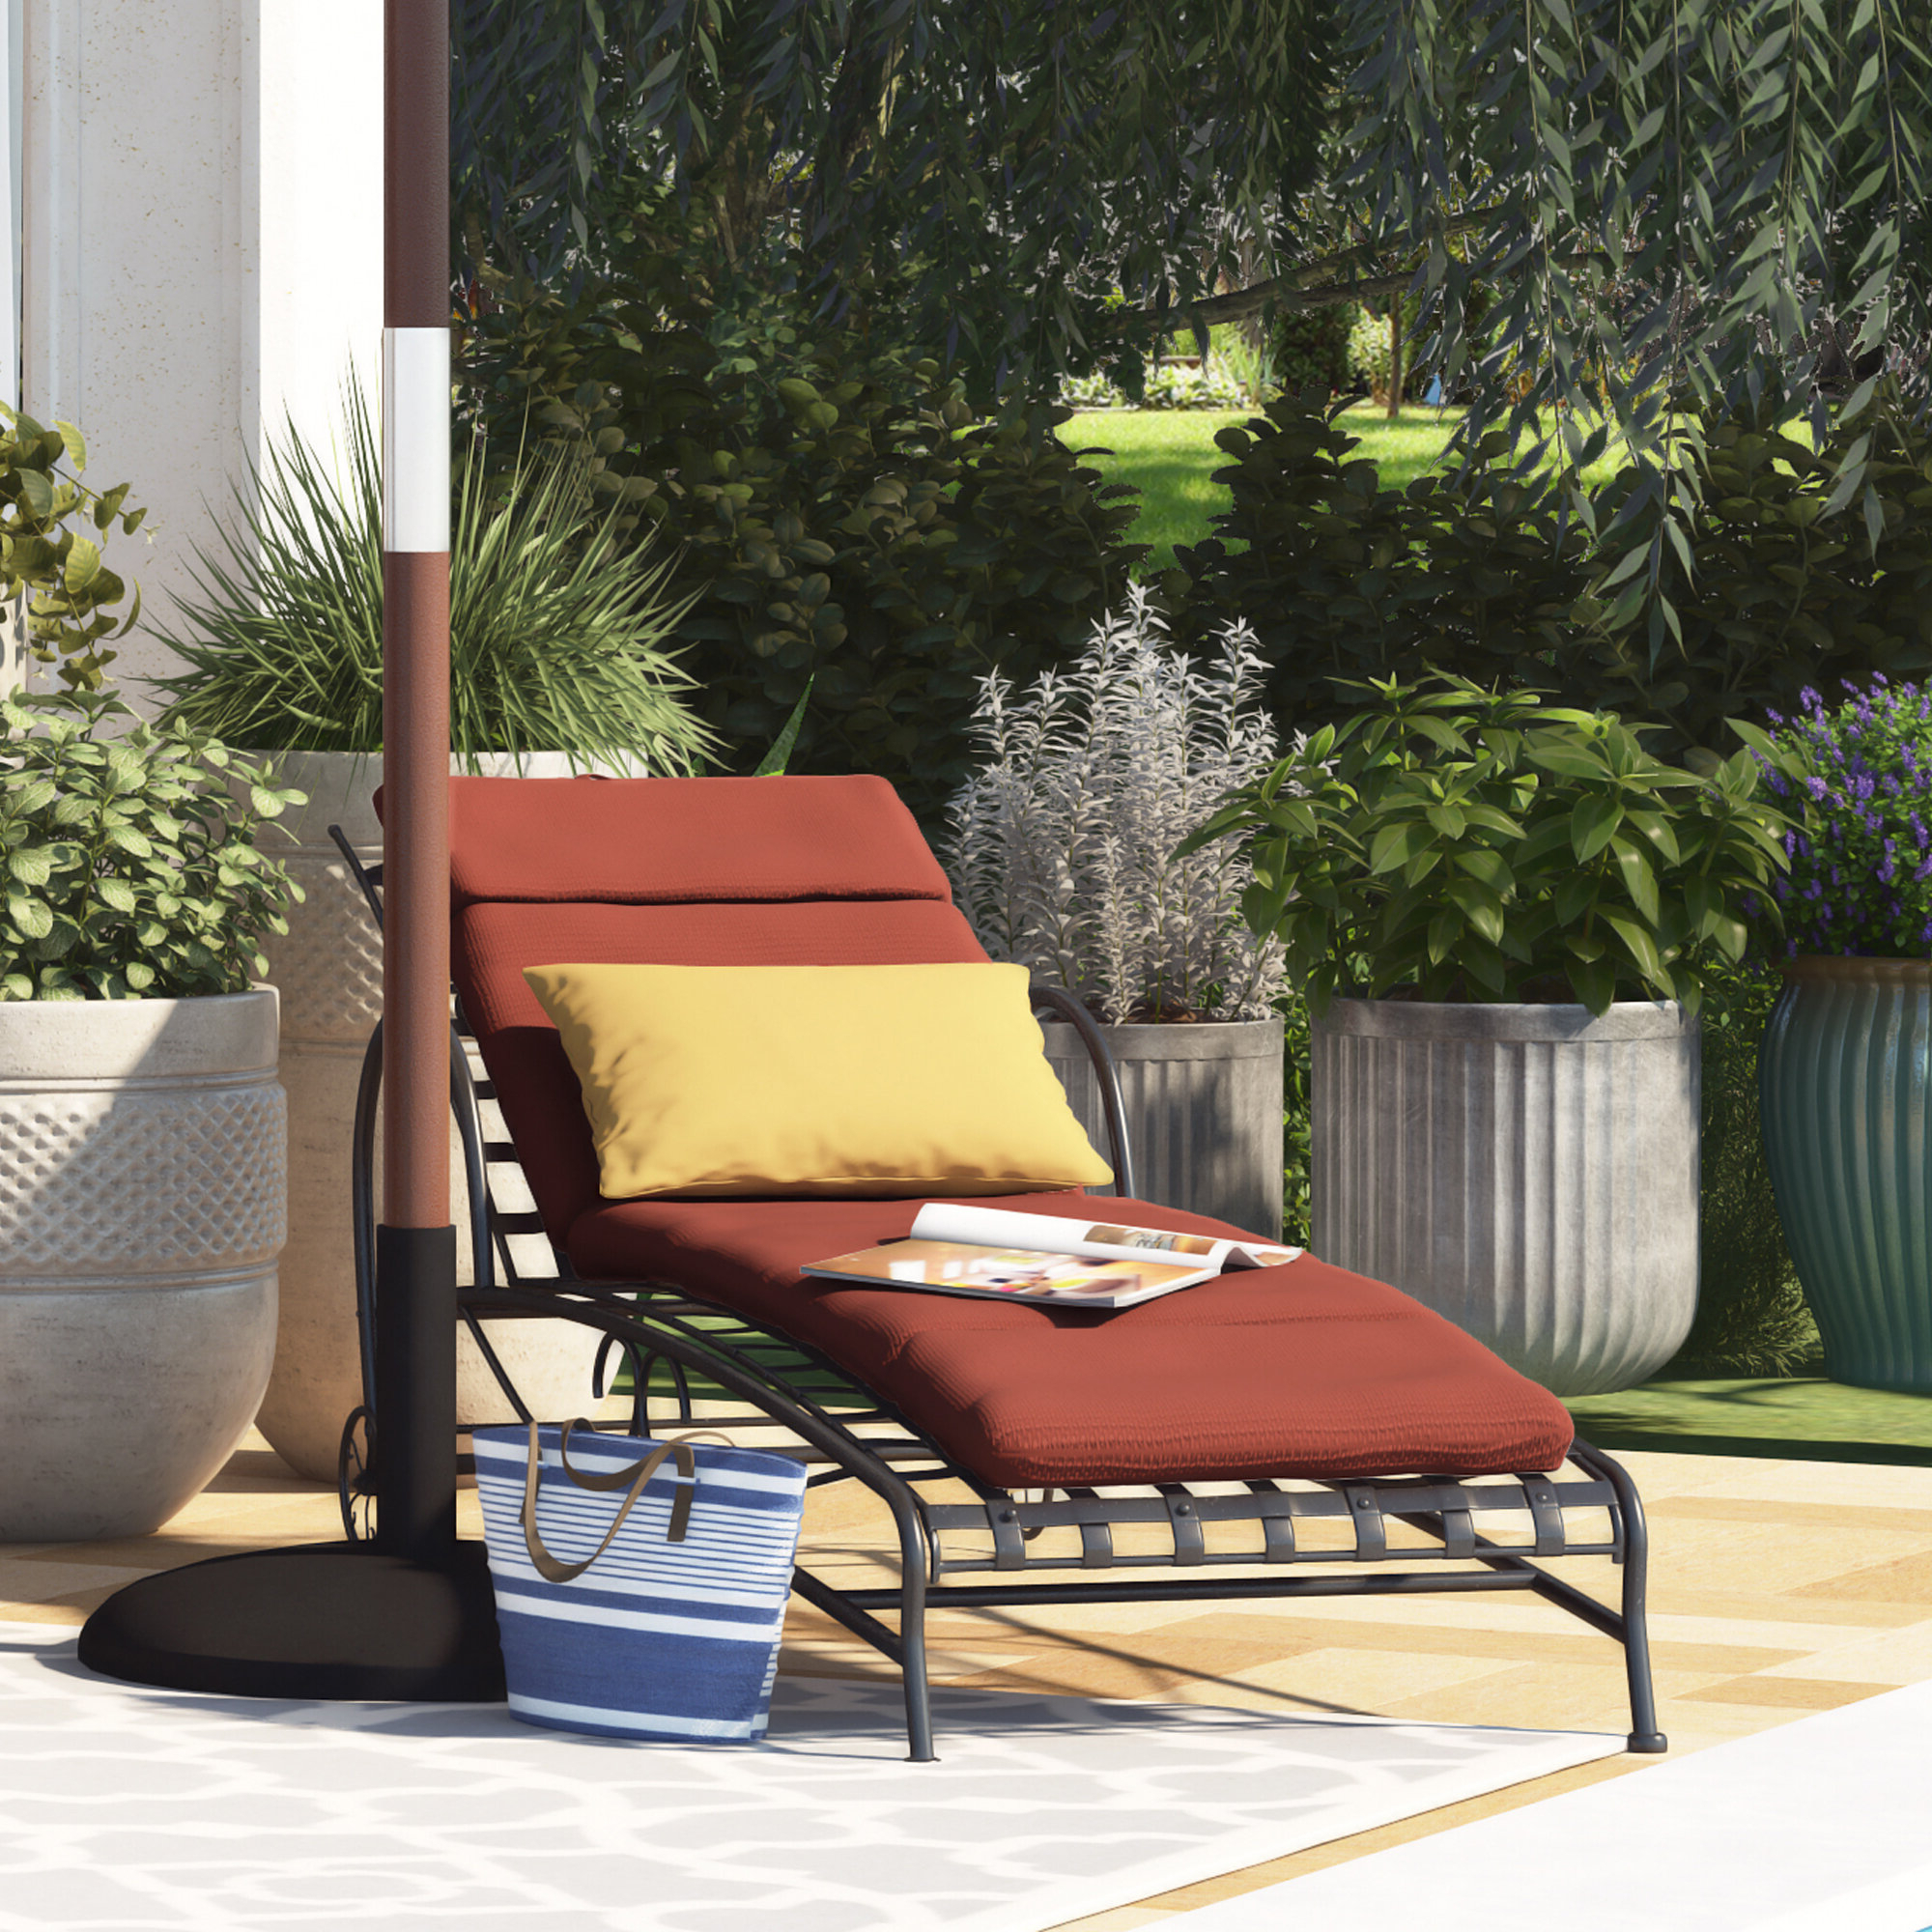 Polyester Indoor/outdoor Chaise Lounge Cushion Intended For Most Recent Indoor Outdoor Textured Bright Chaise Lounges With Sunbrella Fabric (View 18 of 25)